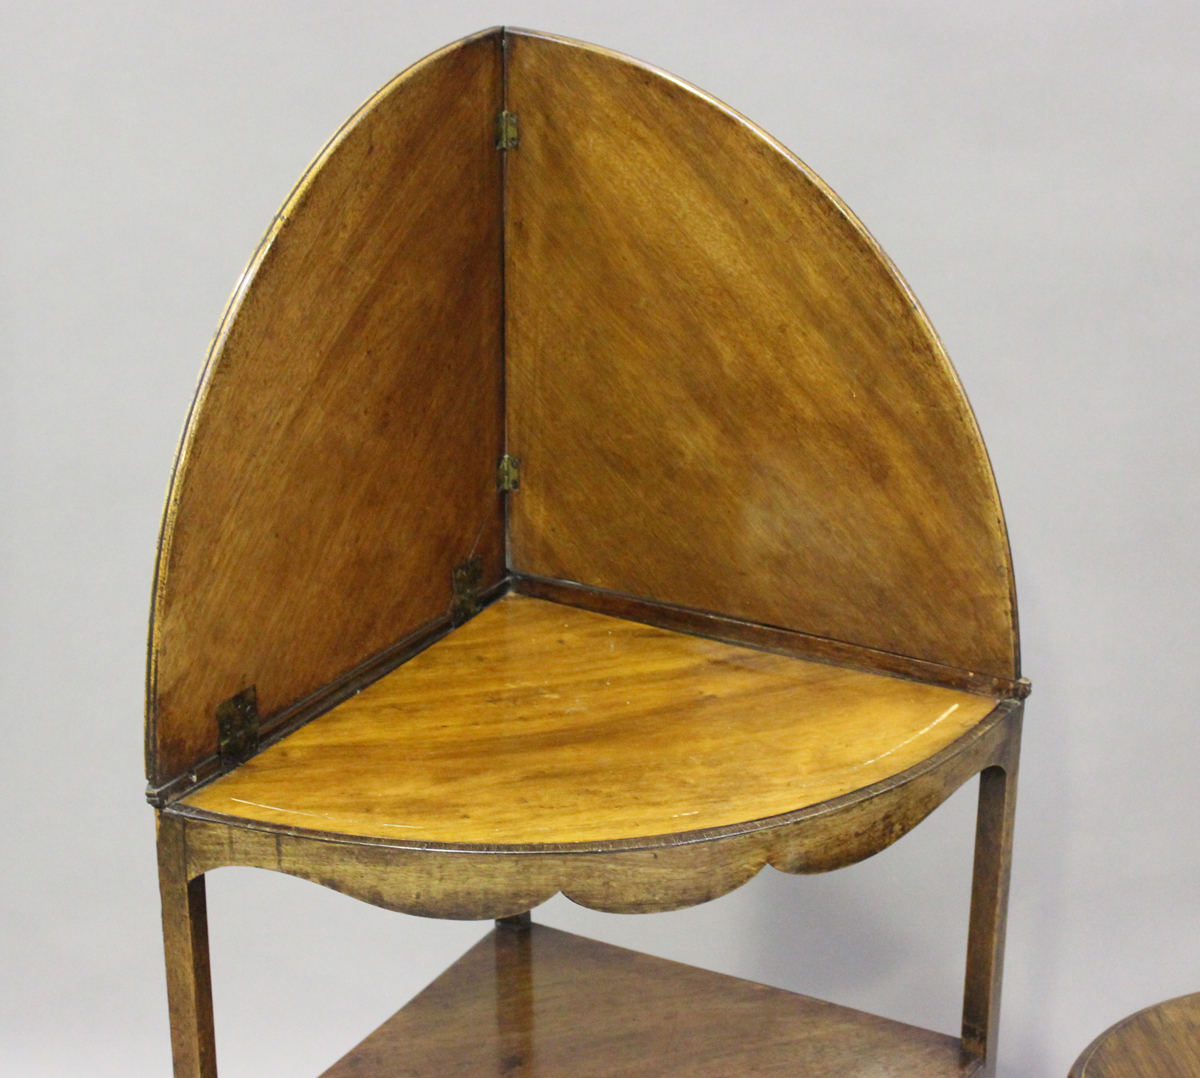 A George III mahogany corner washstand, height 88cm, width 77cm, depth 43cm, together with a pair of - Image 2 of 4